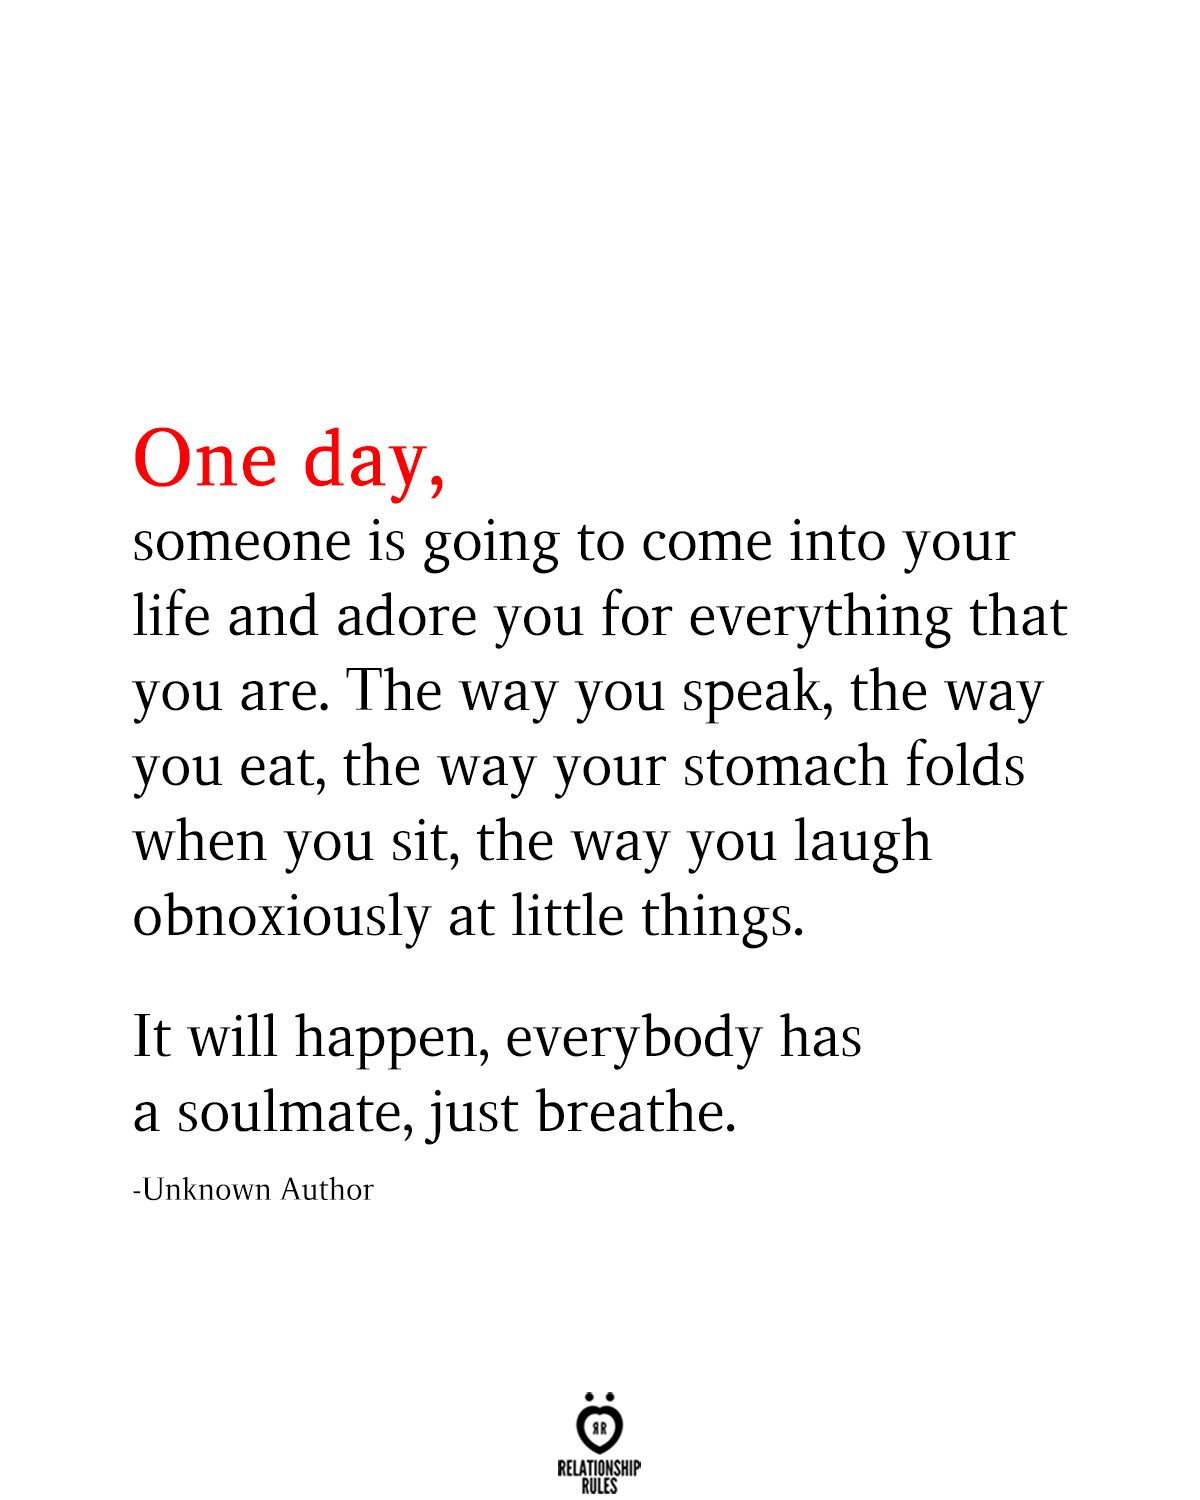 One Day Someone Is Going To Come Into Your Life And Adore You For Everything That You Are True Quotes Quotes About Everything Love Quotes